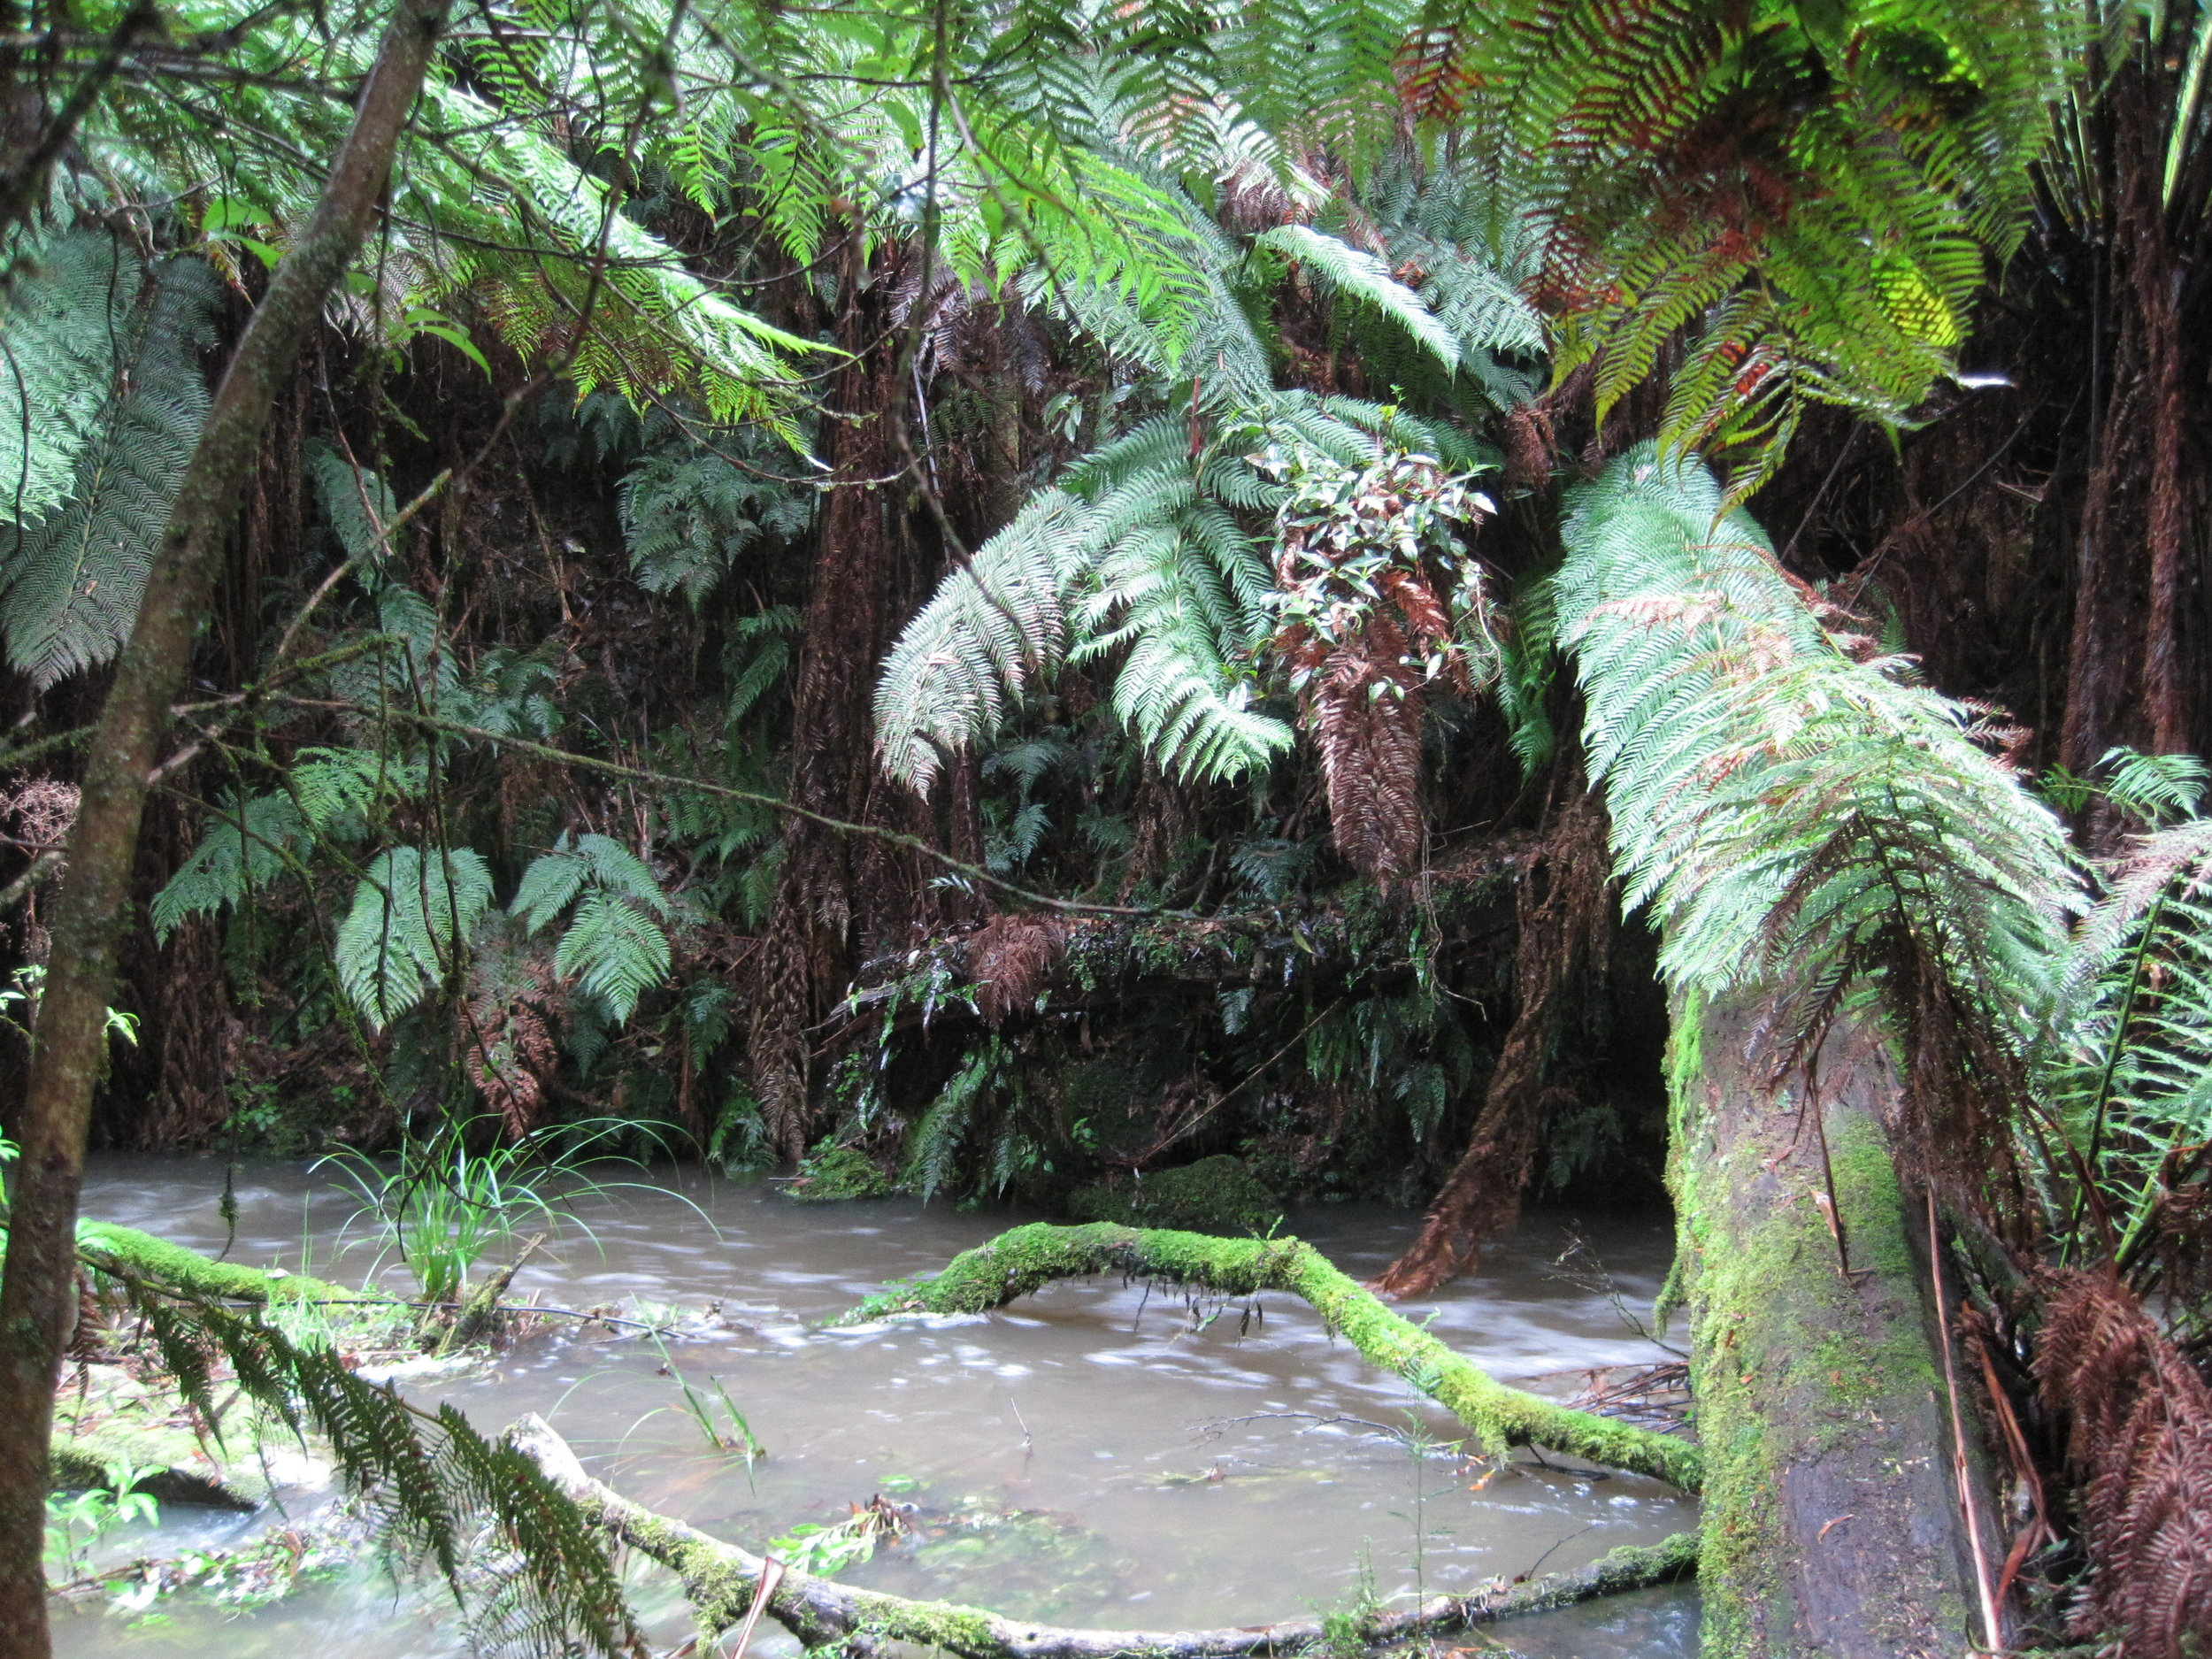 After heavy rainfall, Grey River rushes rapidly under fallen branches and tree fern fronds.  Image: Wendy Cook